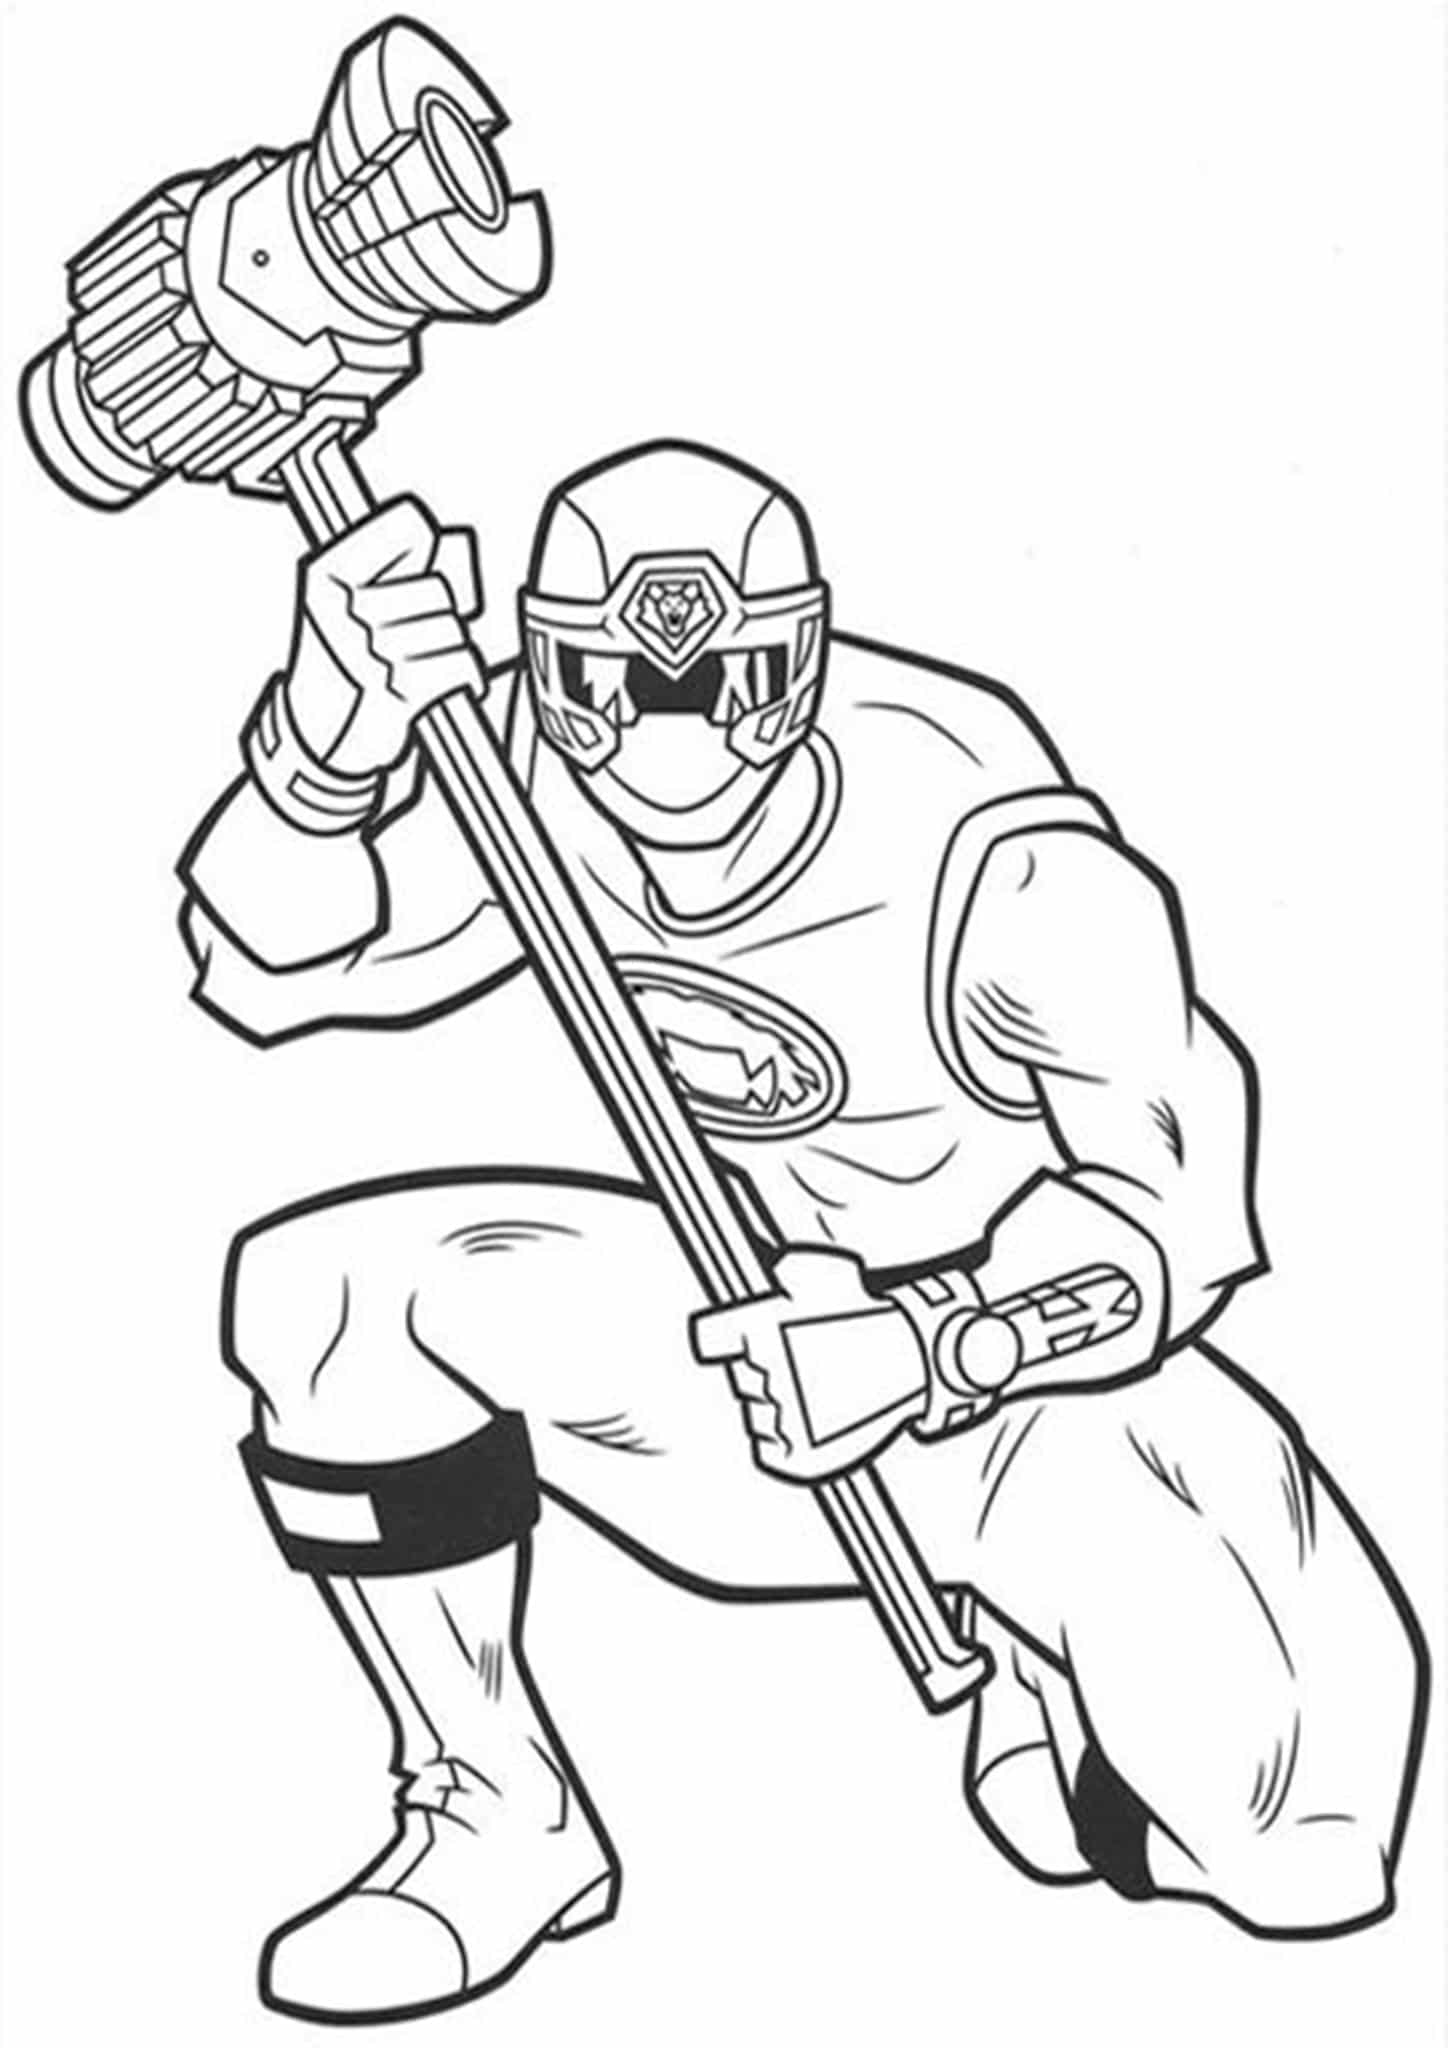 coloring power rangers coloriage power rangers in 2020 power rangers coloring rangers power coloring